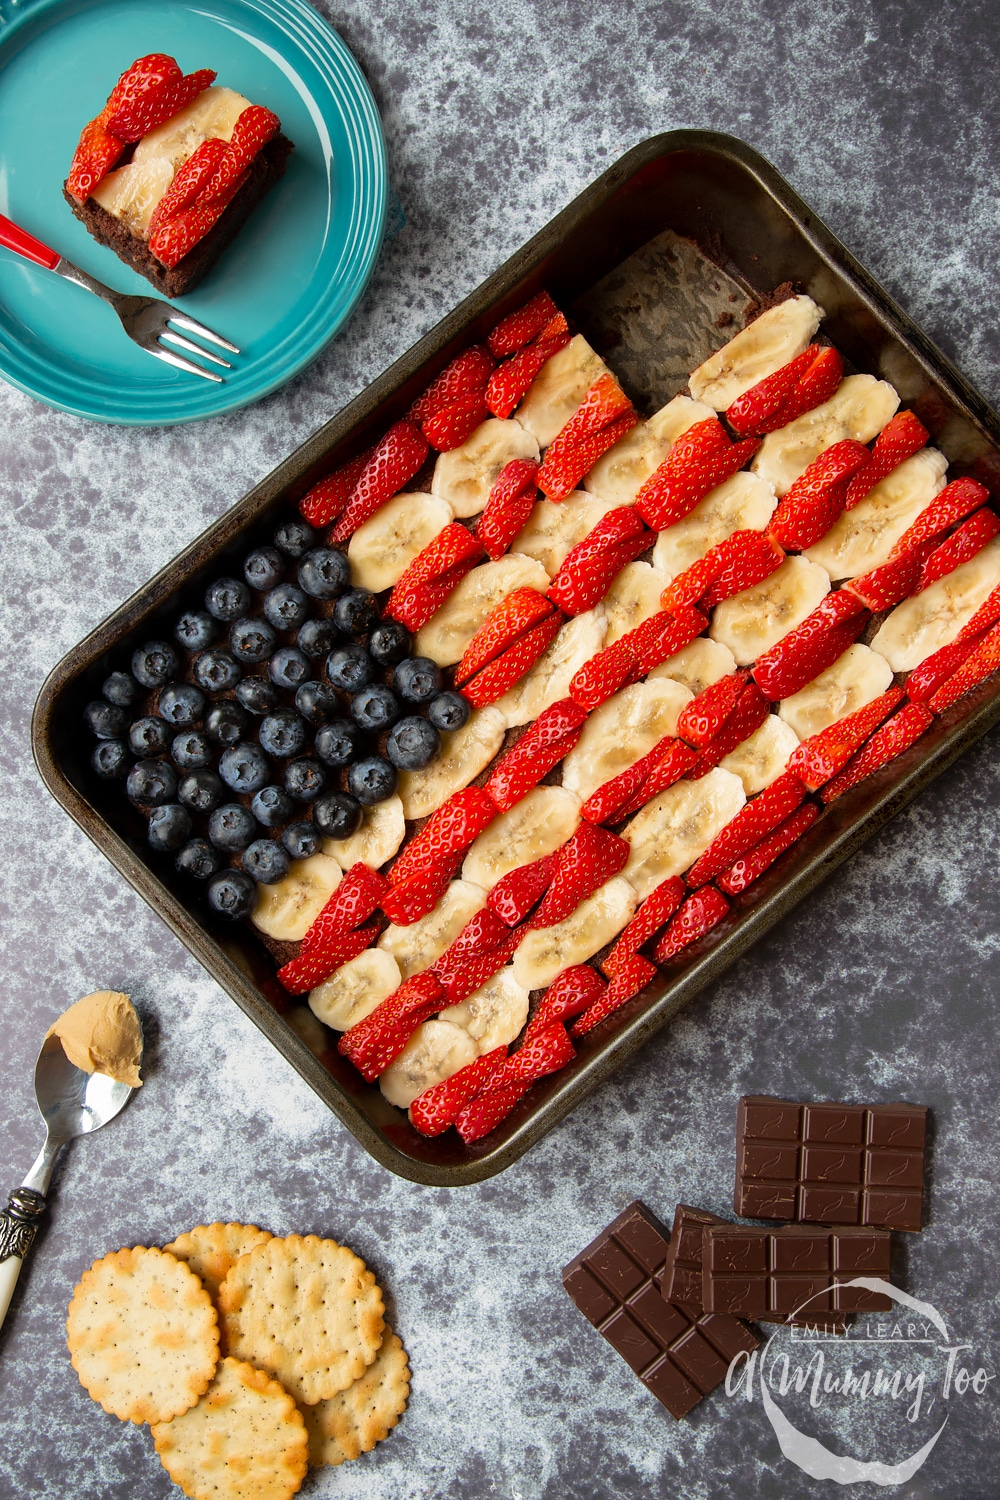 A plate with a section of the peanut butter brownies in the shape of the American flag for the 4th of July alongside the remaining peanut butter brownies tin.